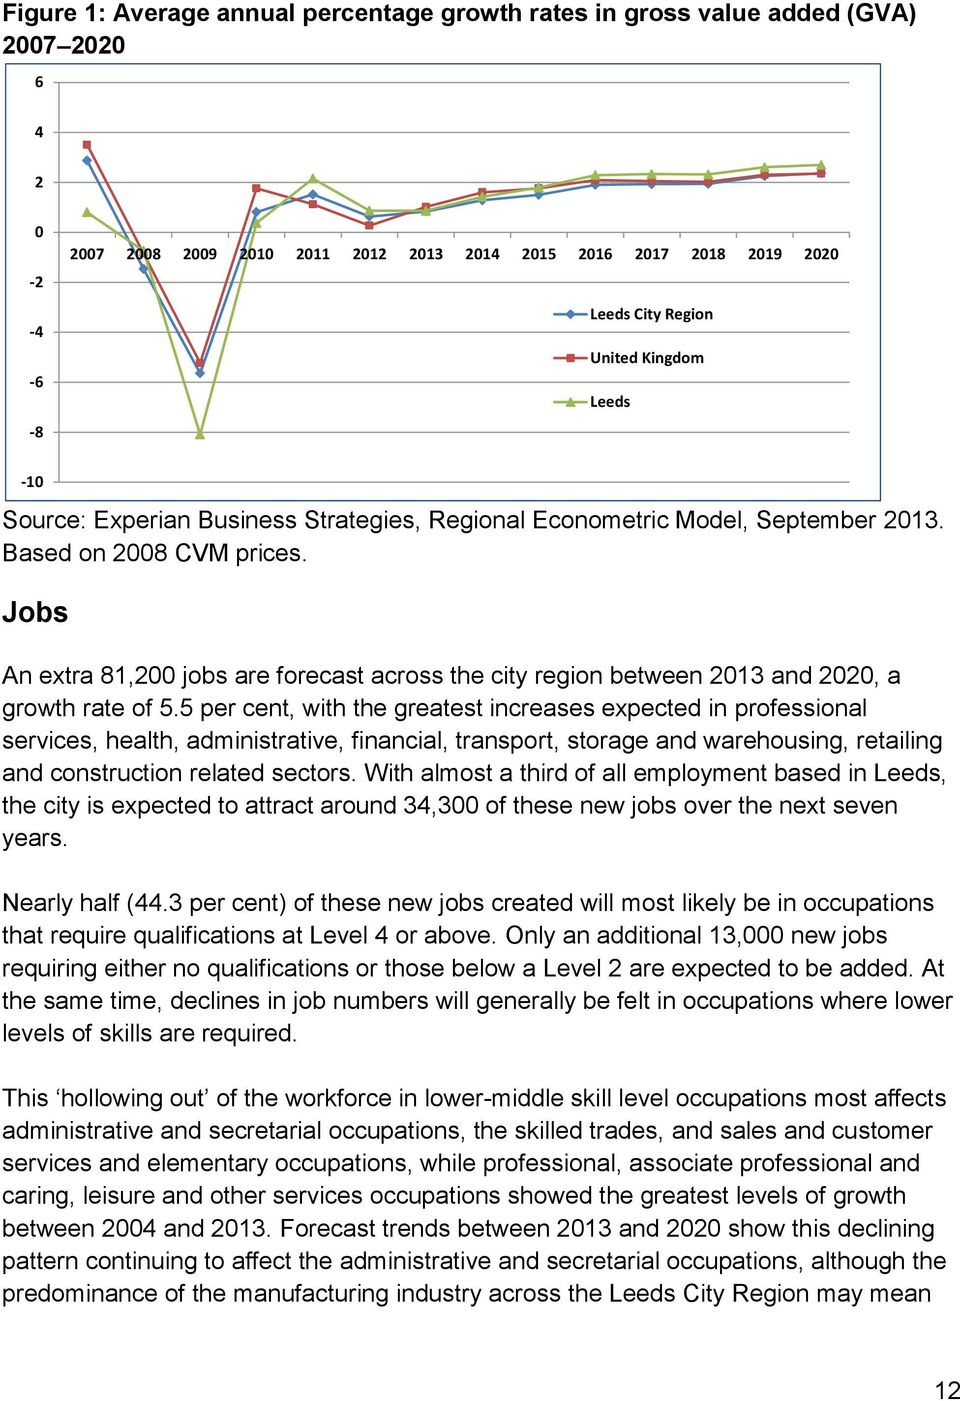 Jobs An extra 81,200 jobs are forecast across the city region between 2013 and 2020, a growth rate of 5.